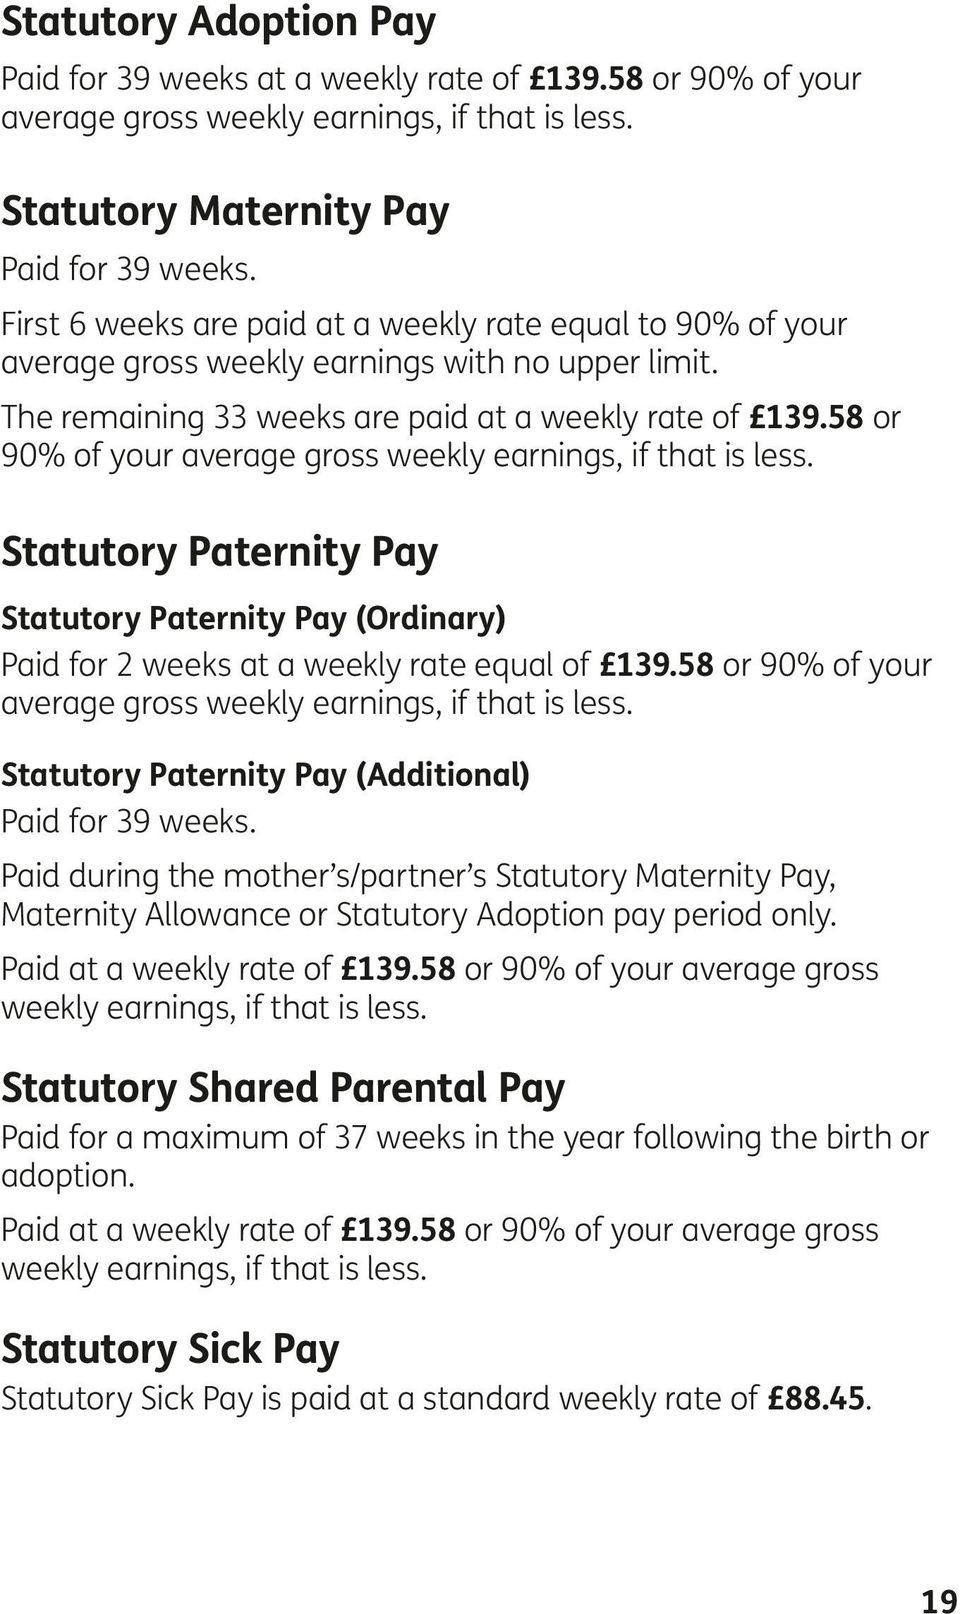 58 or 90% of your average gross weekly earnings, if that is less. Statutory Paternity Pay Statutory Paternity Pay (Ordinary) Paid for 2 weeks at a weekly rate equal of 139.